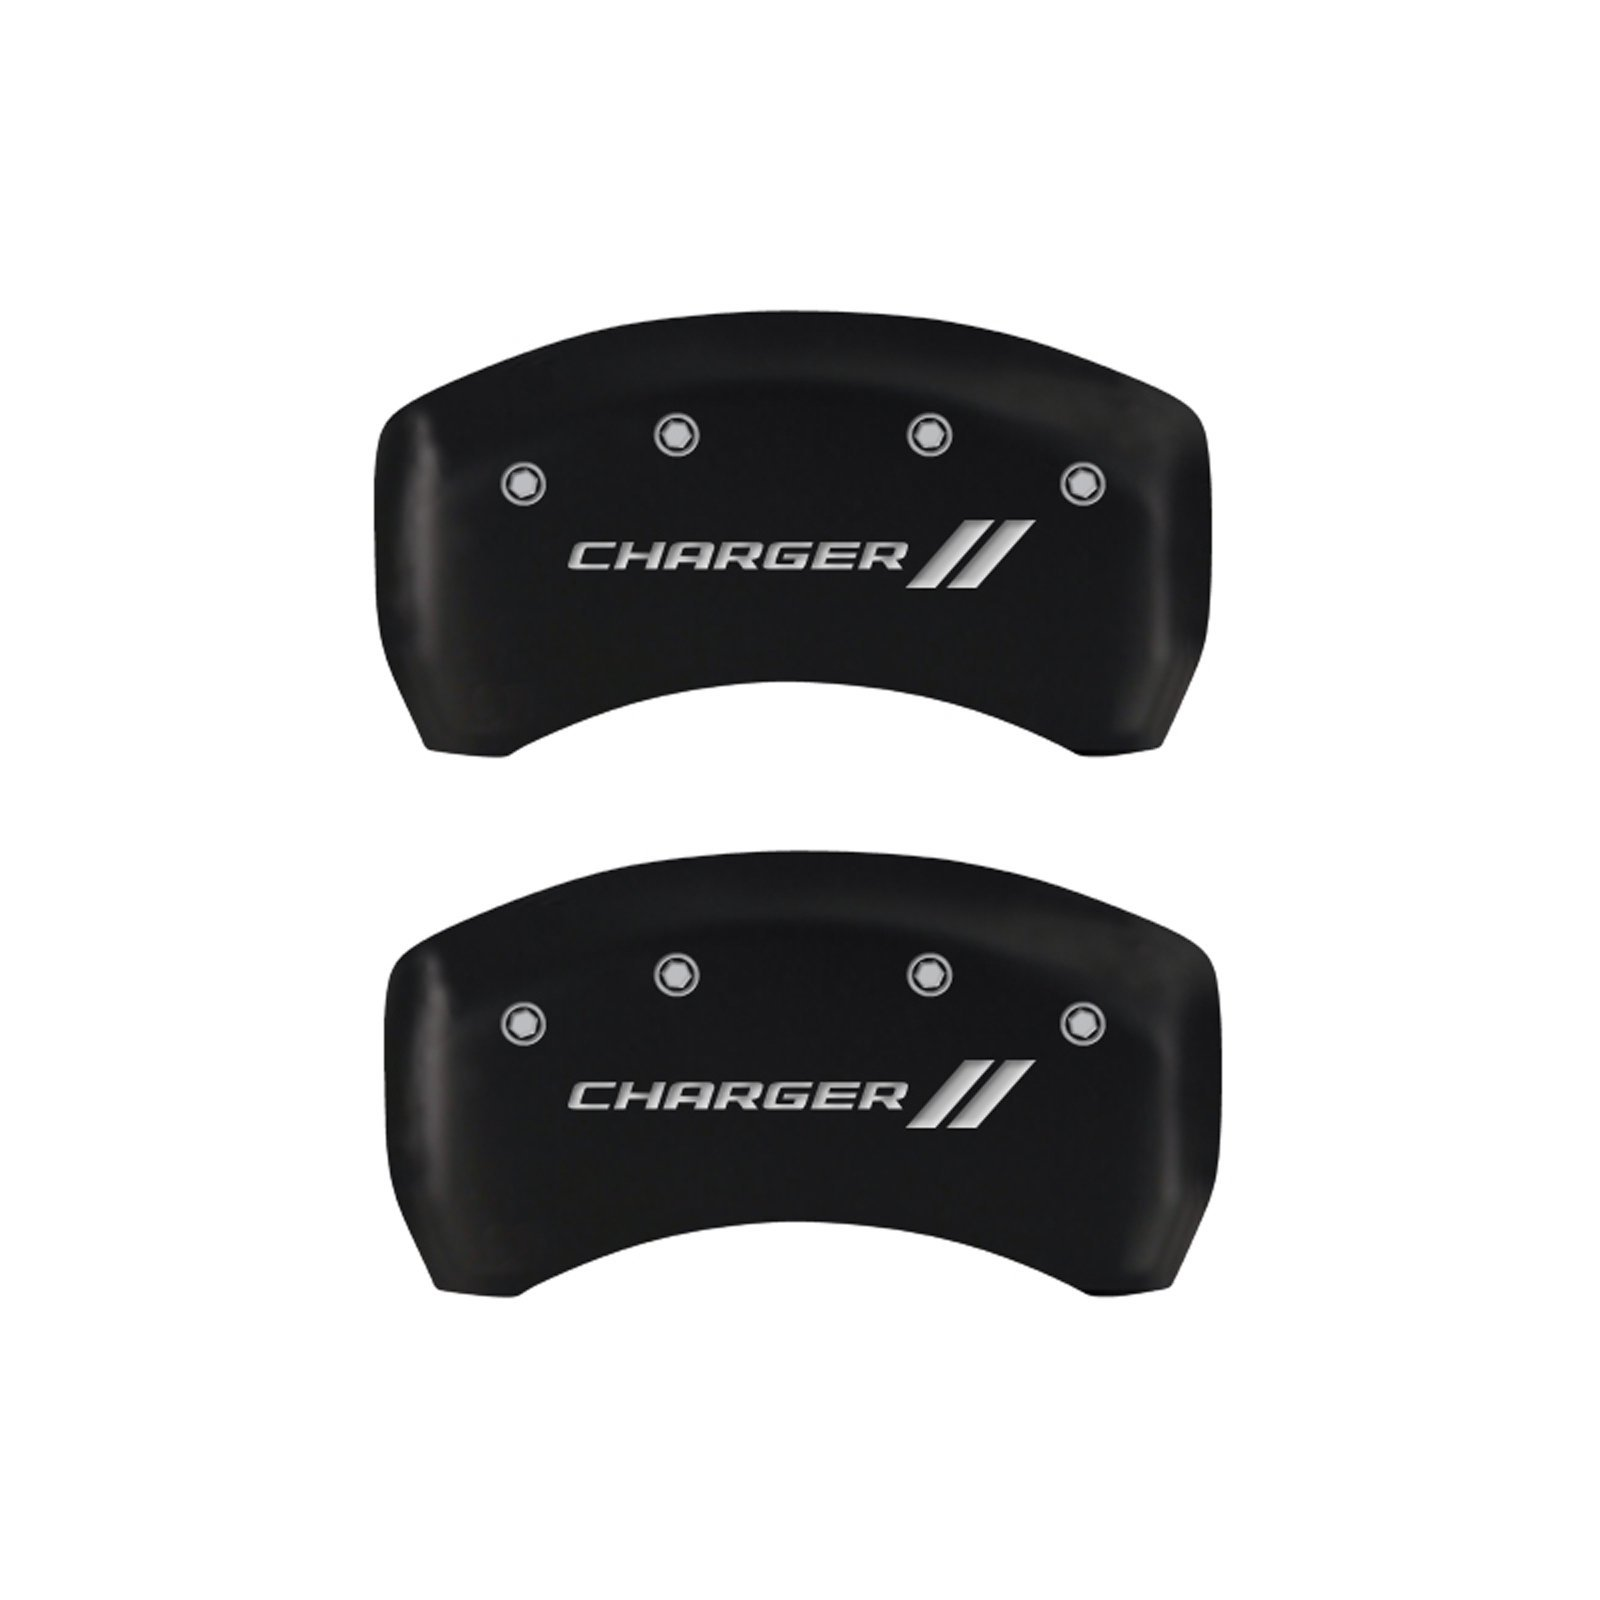 MGP Caliper Covers 12162SCH1MB 'Charger ll' Engraved Caliper Cover with Matte Black Powder Coat Finish and Silver Characters, (Set of 4) by MGP Caliper Covers (Image #1)